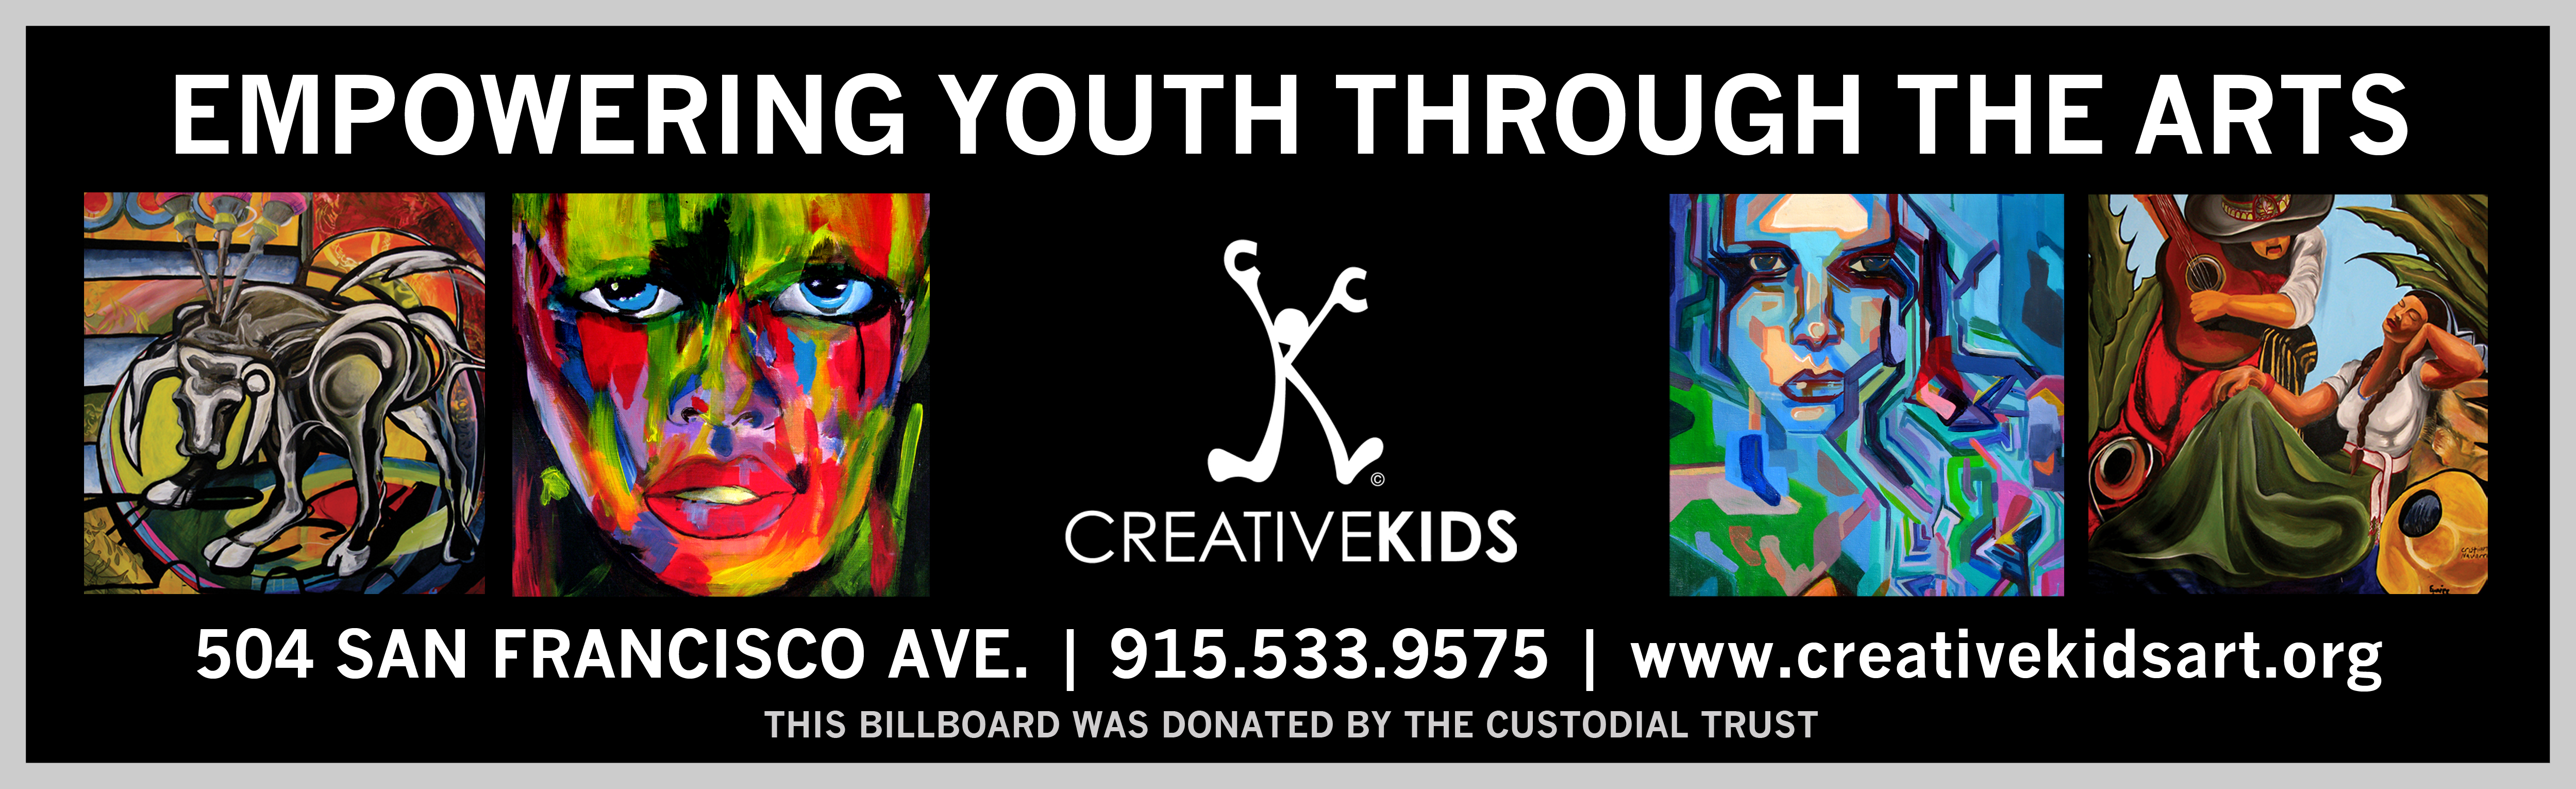 Creative Kids Billboard